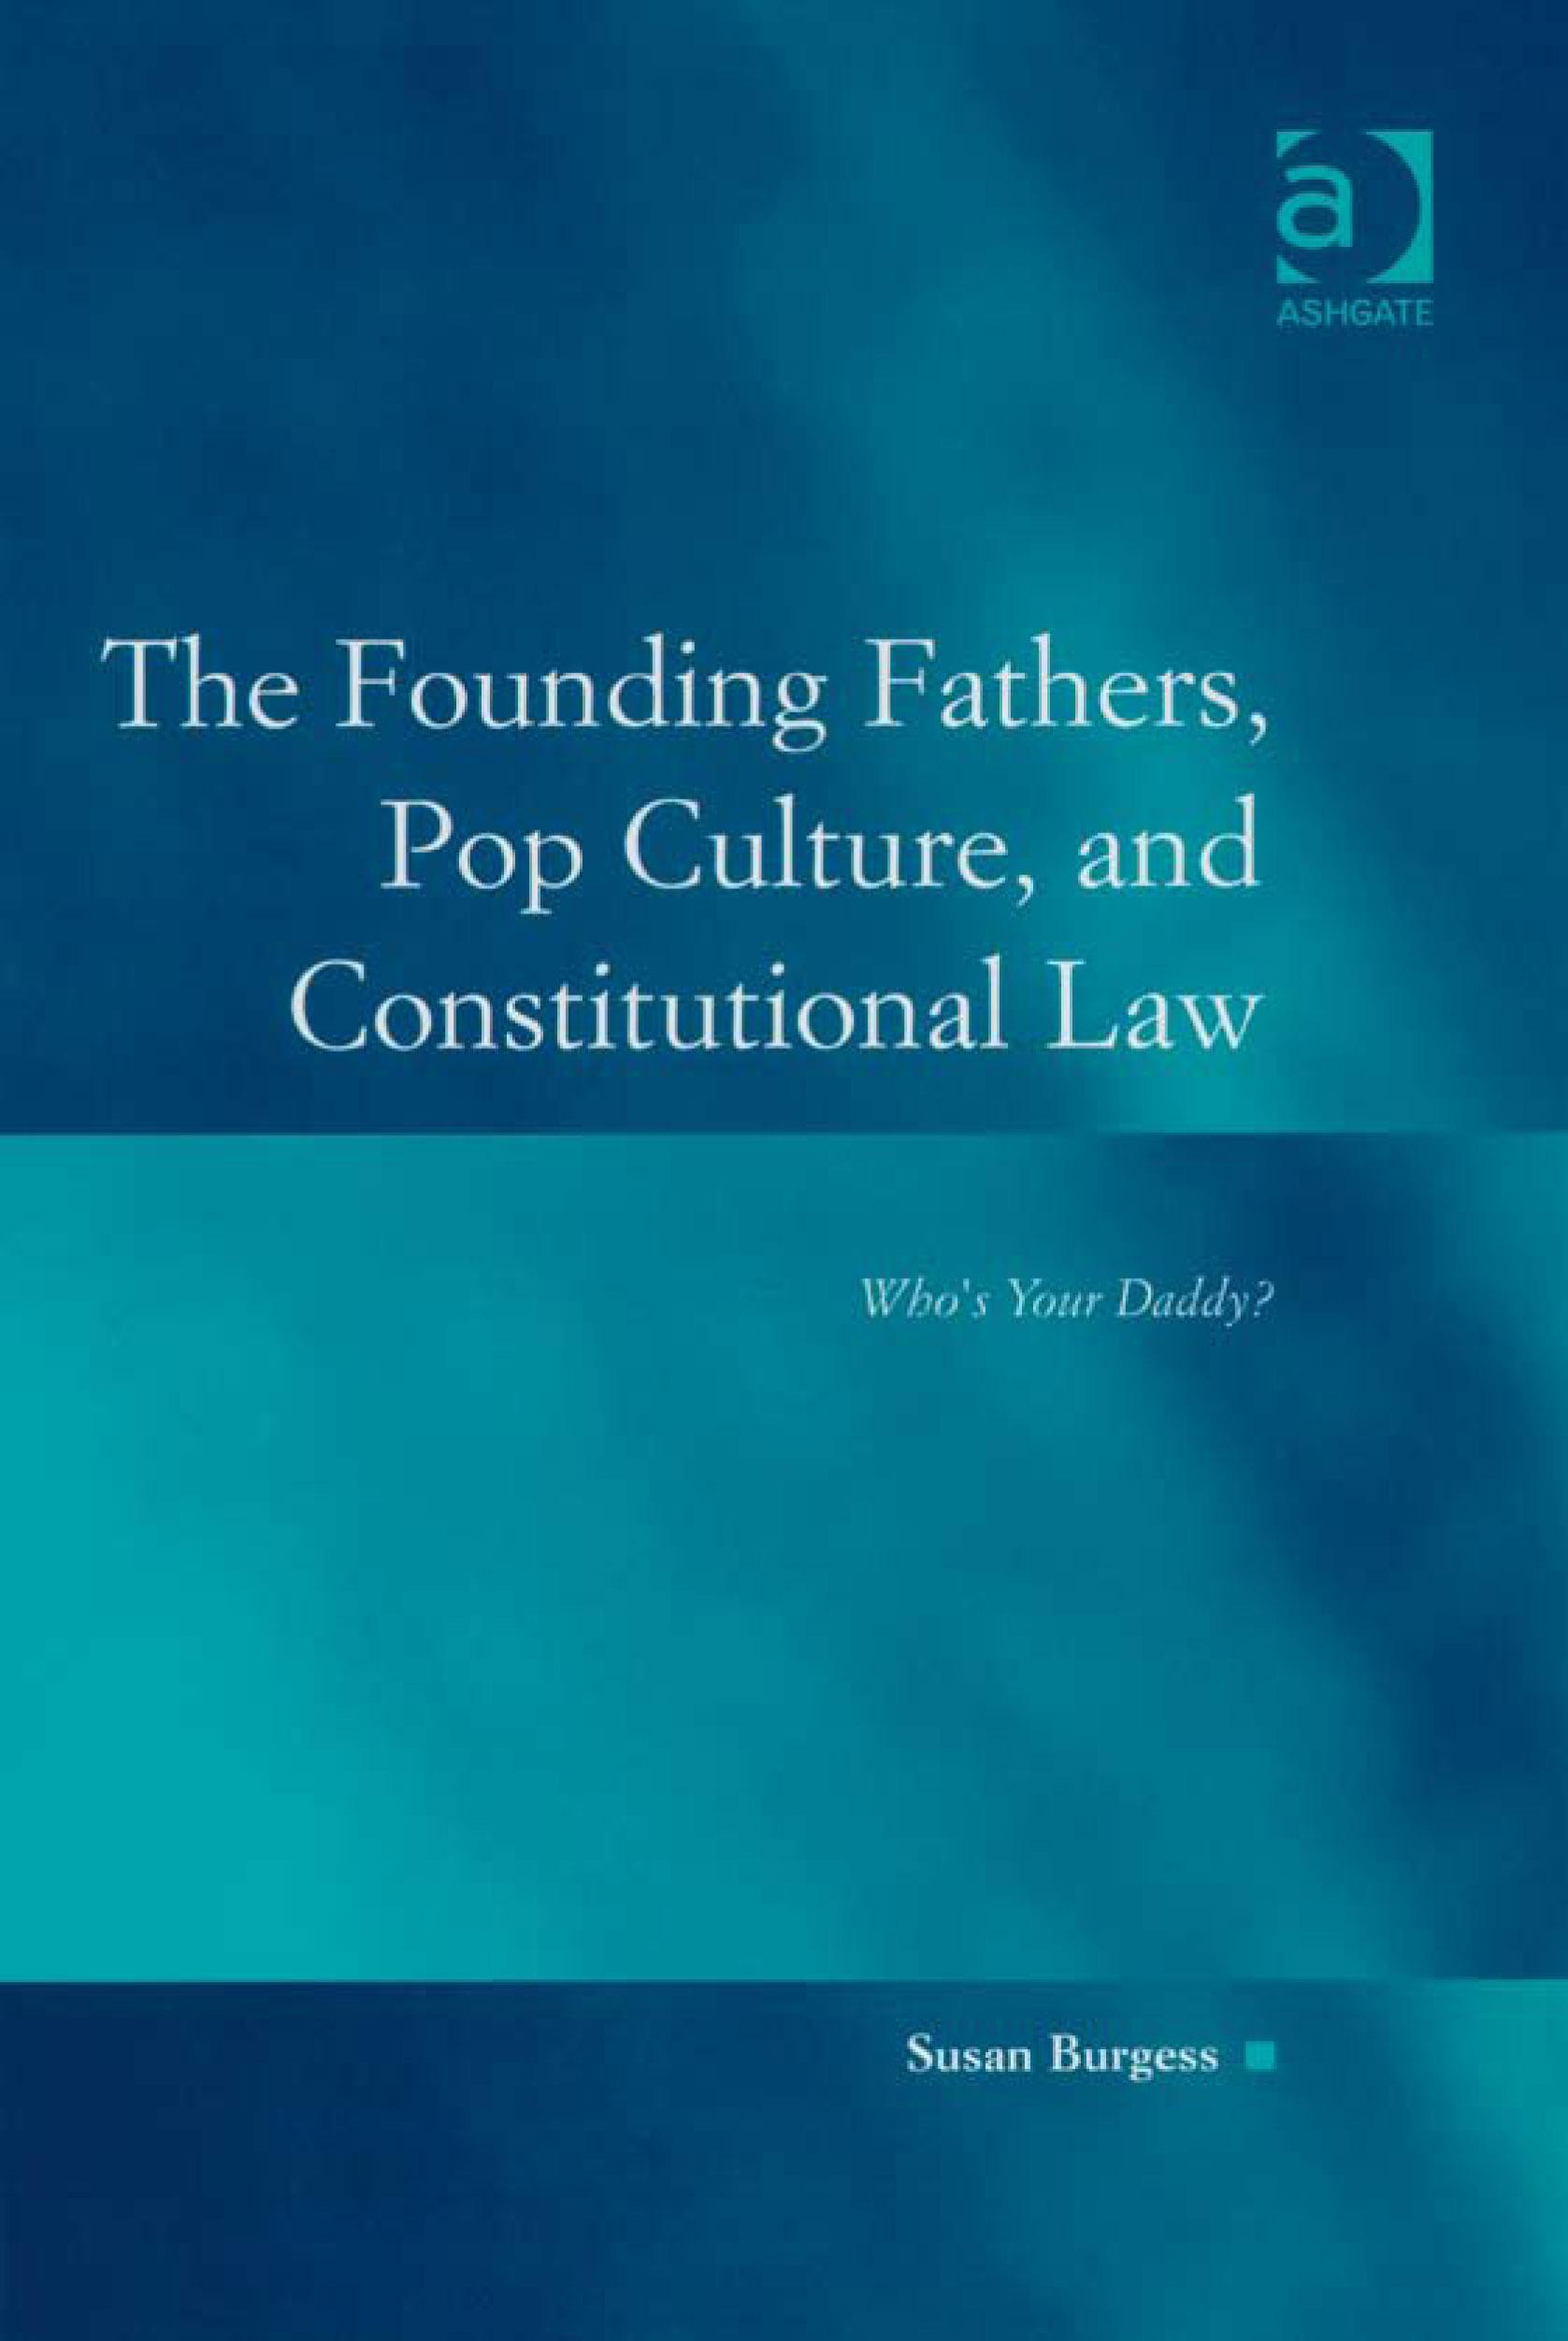 Founding Fathers, Pop Culture, and Constitutional Law, The: Who's Your Daddy? EB9780754688341